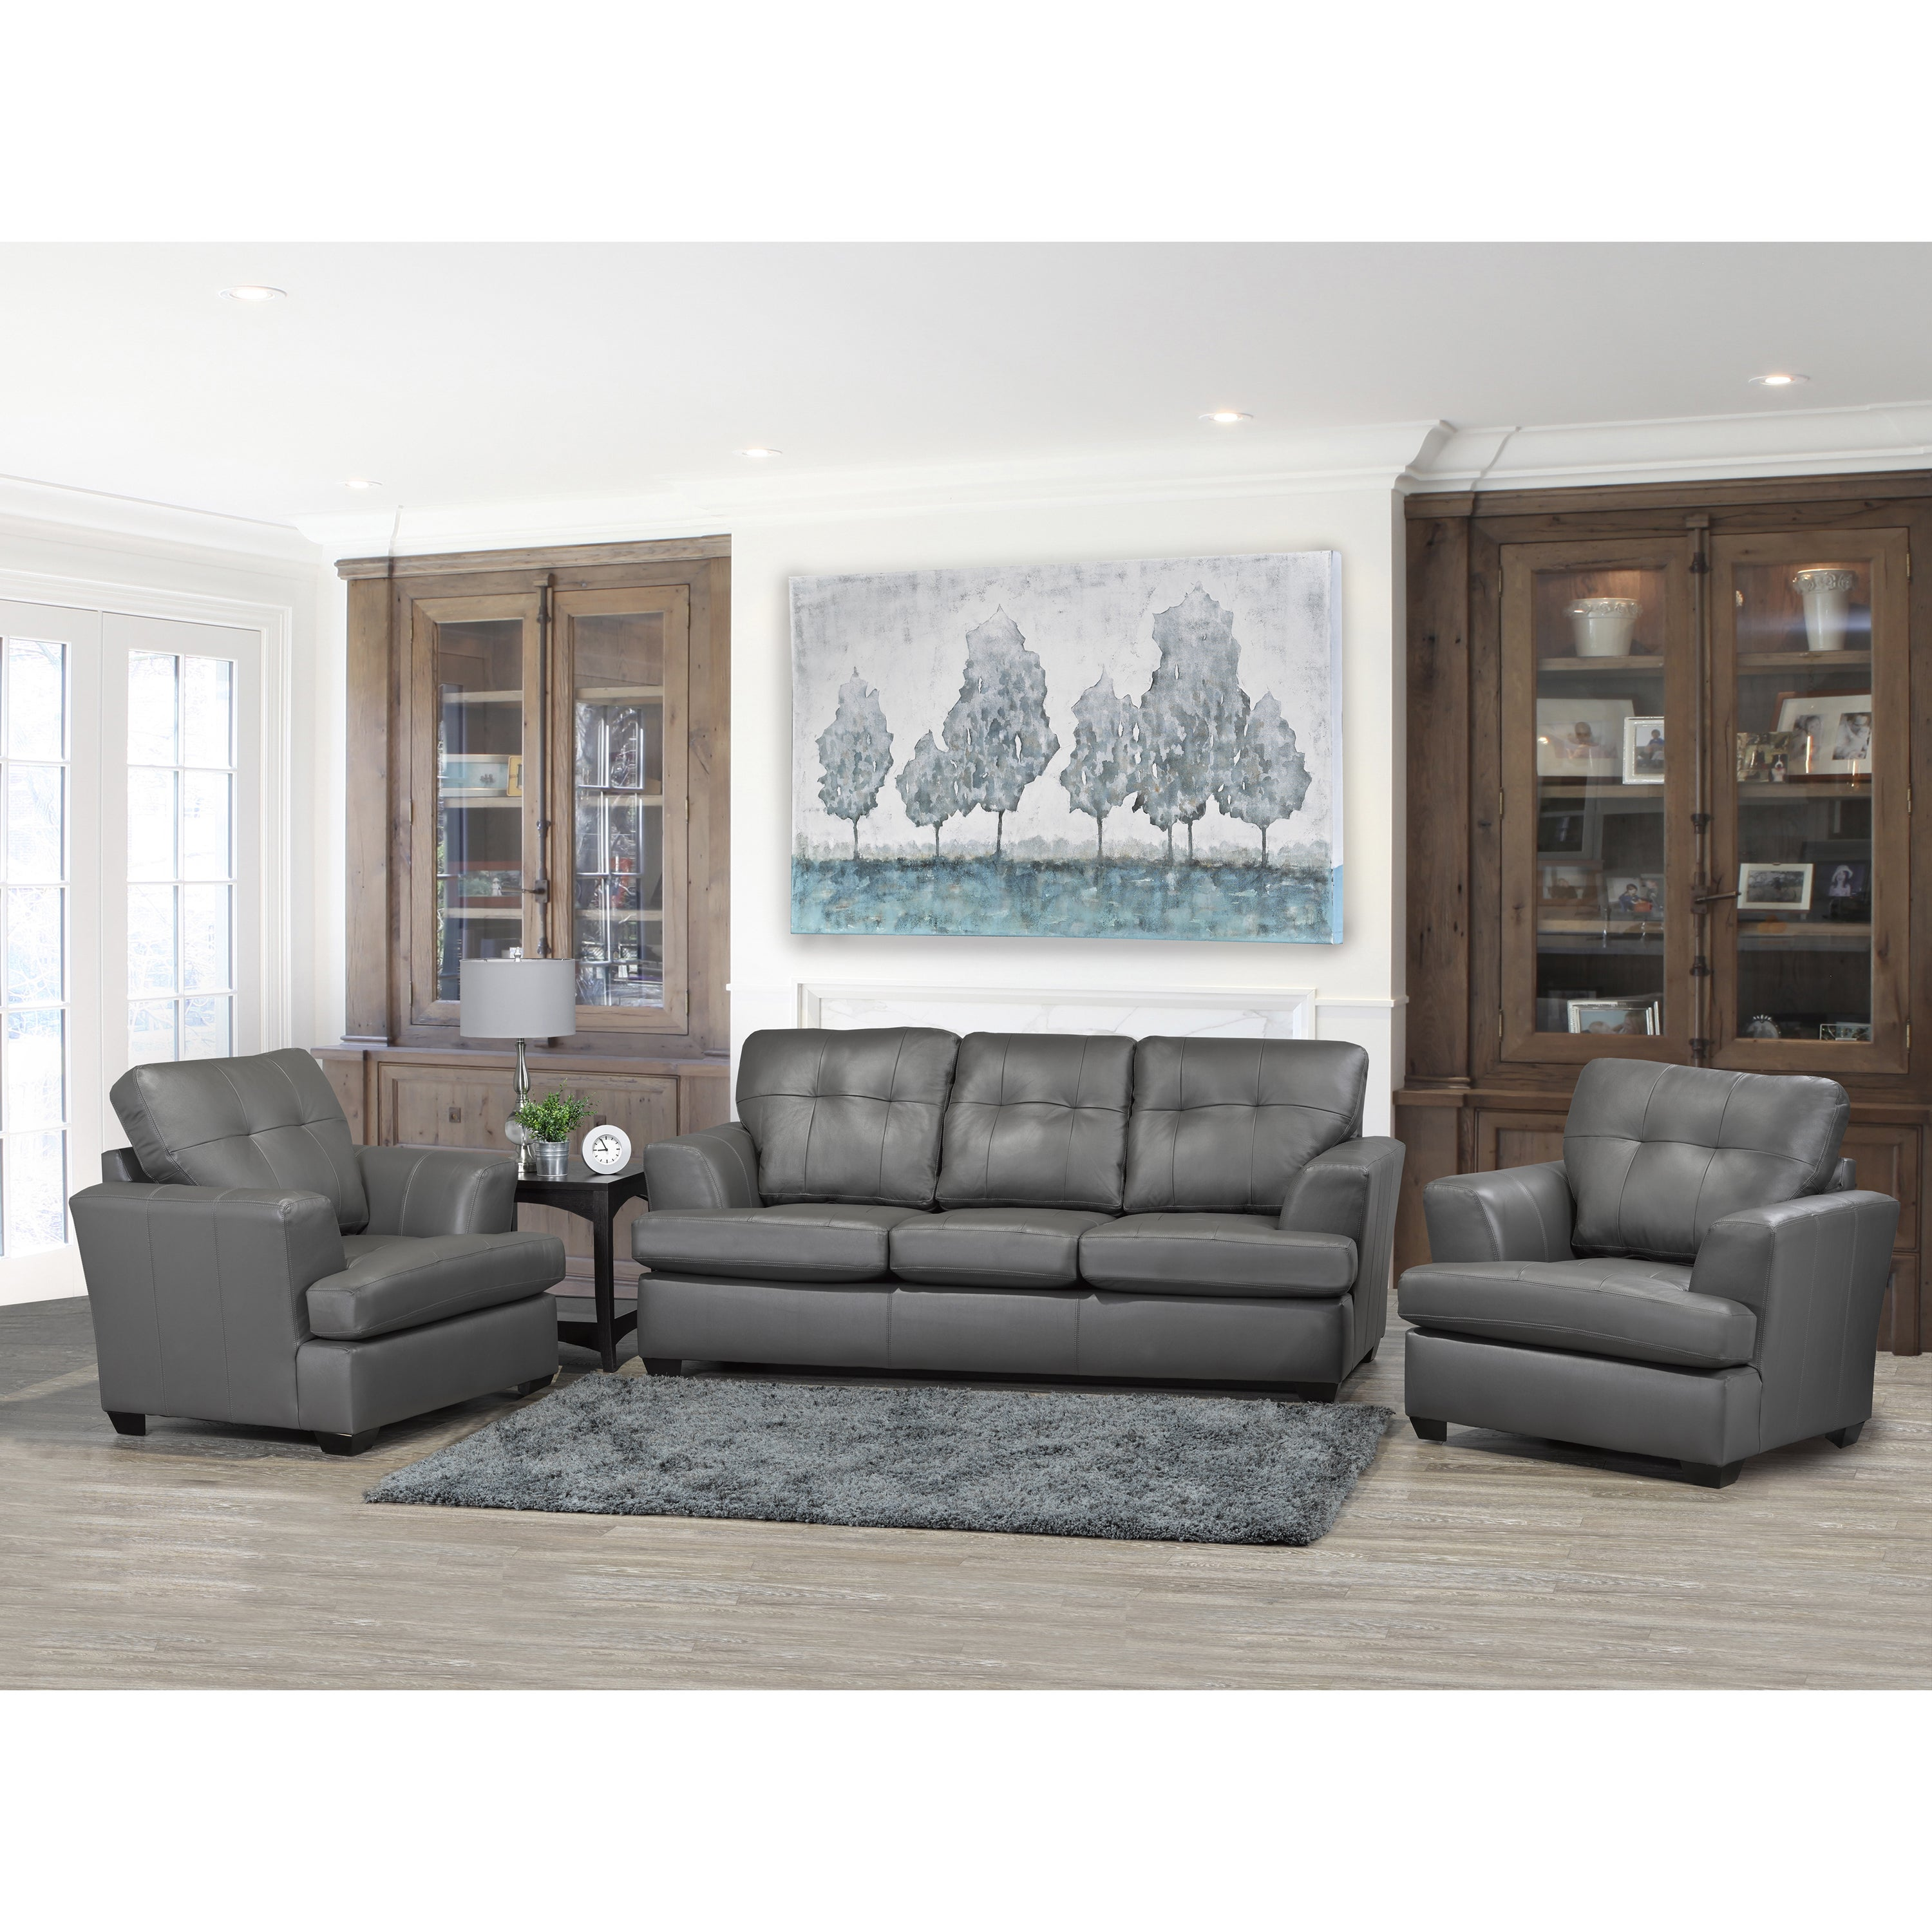 Brilliant Travis Premium Grey Top Grain Leather Sofa And Two Chairs Set Short Links Chair Design For Home Short Linksinfo